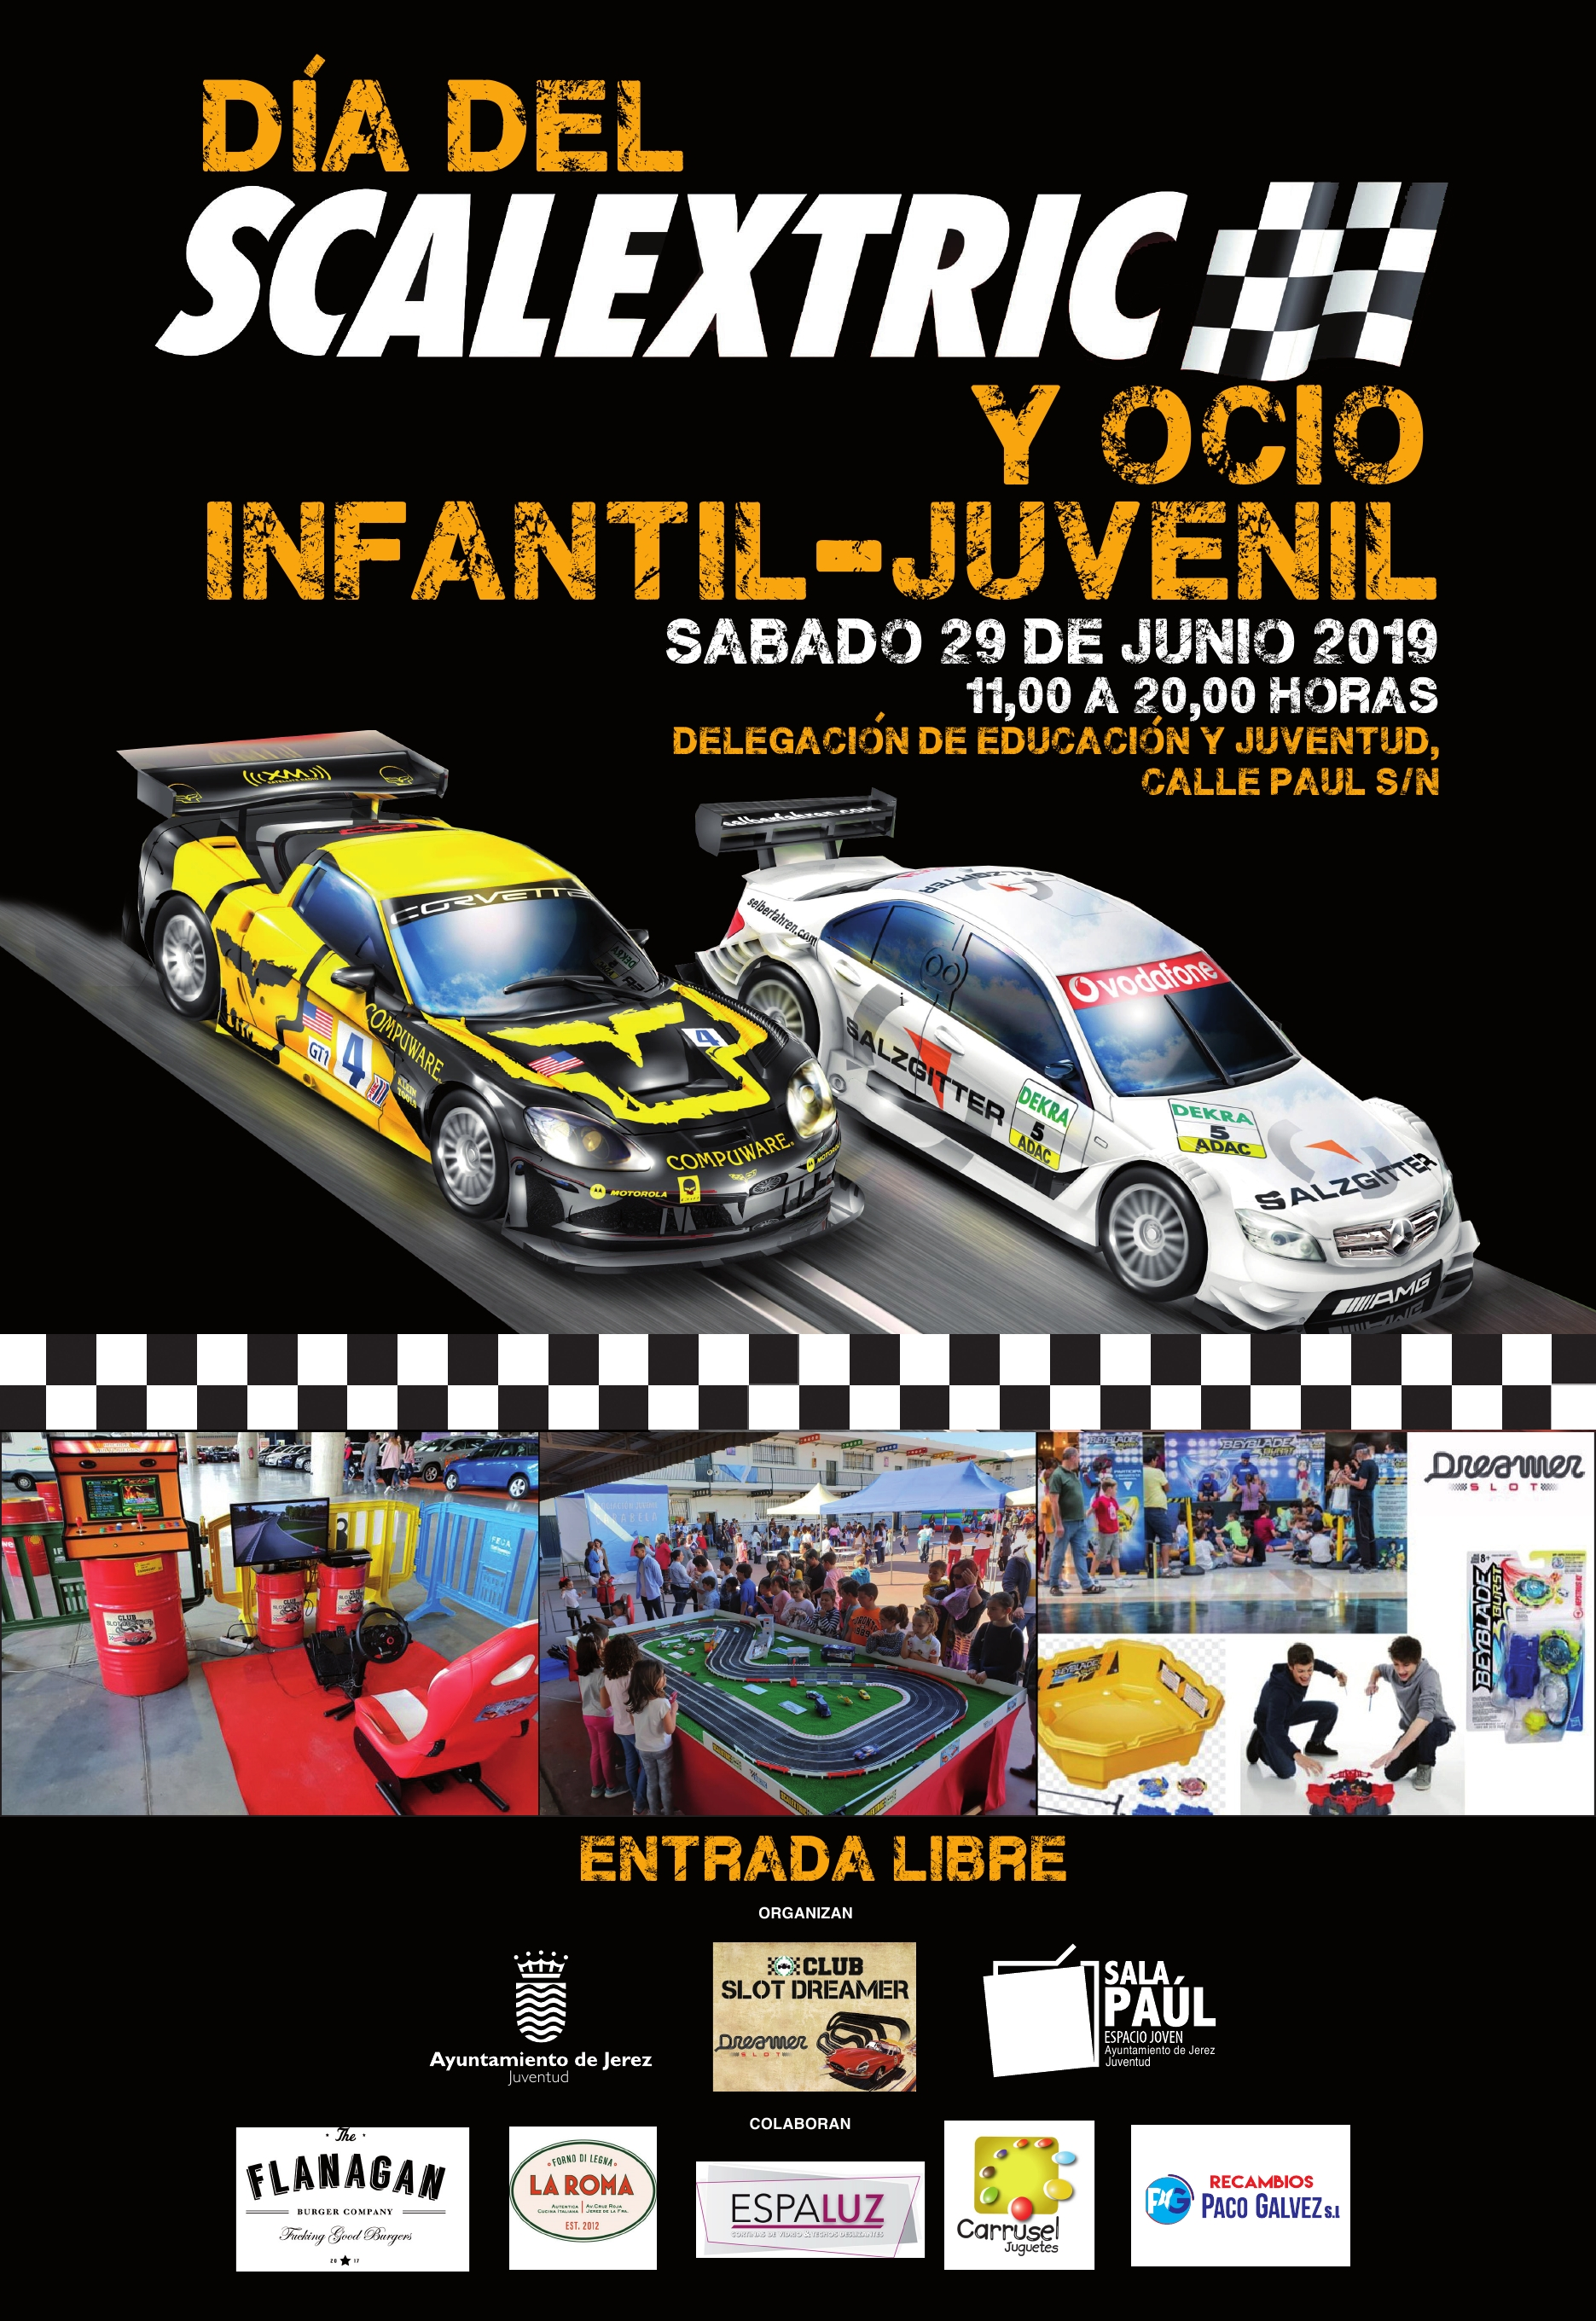 sites/default/files/2019_AGENDA/friki/Cartel_Scalextric.jpg